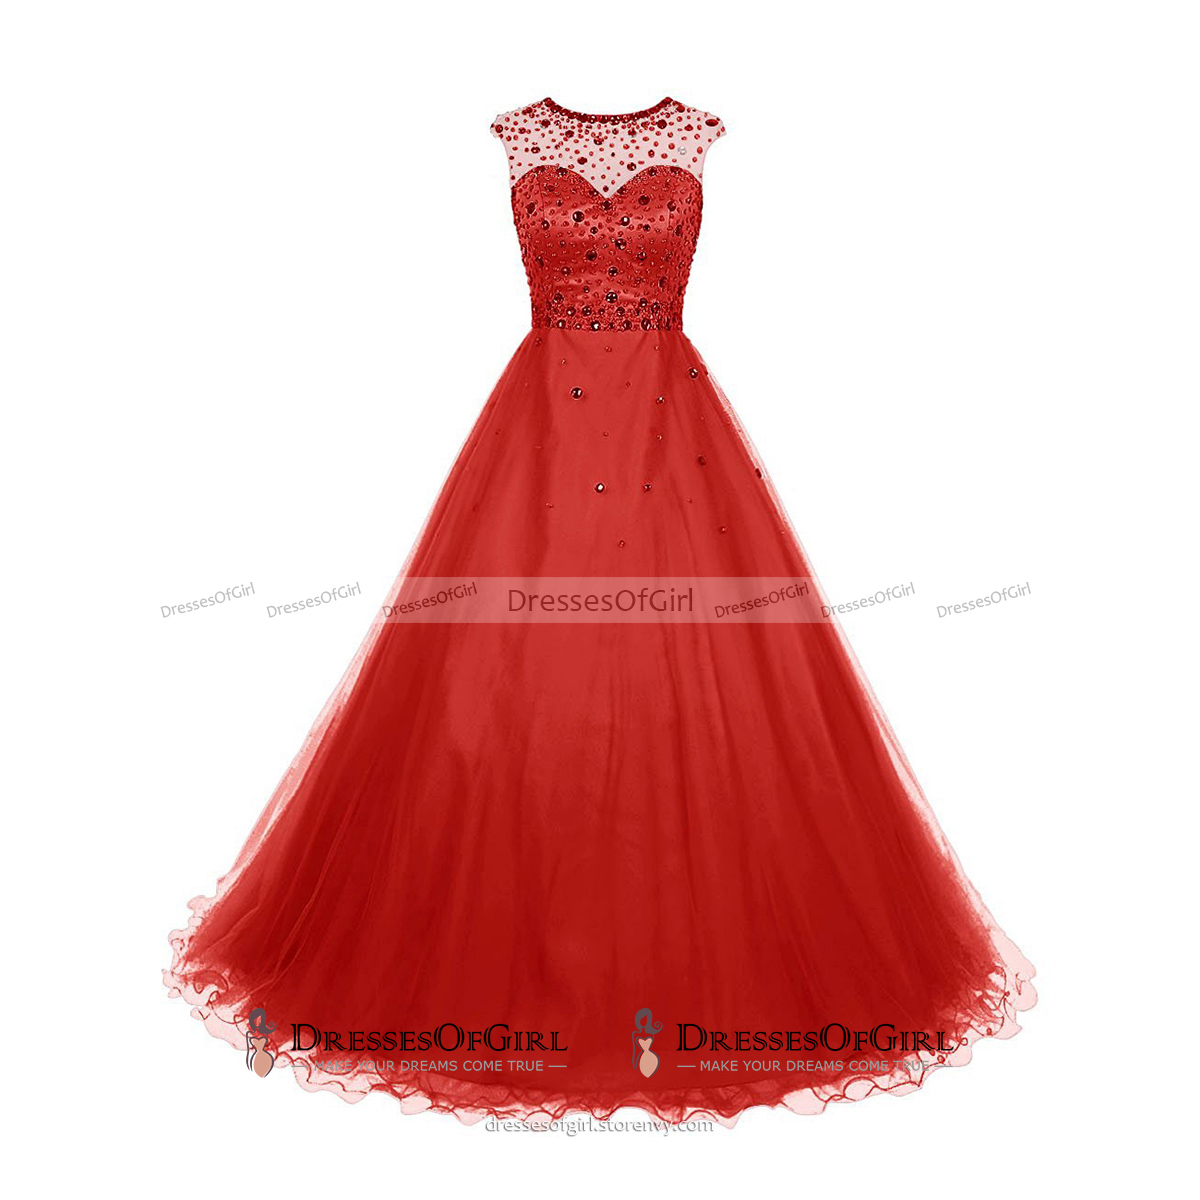 e2f8c5ebeefe ... Crystal Jewel Neck Illusion Cap Sleeves Prom Dress, Beaded A-line Long  Prom Dress ...